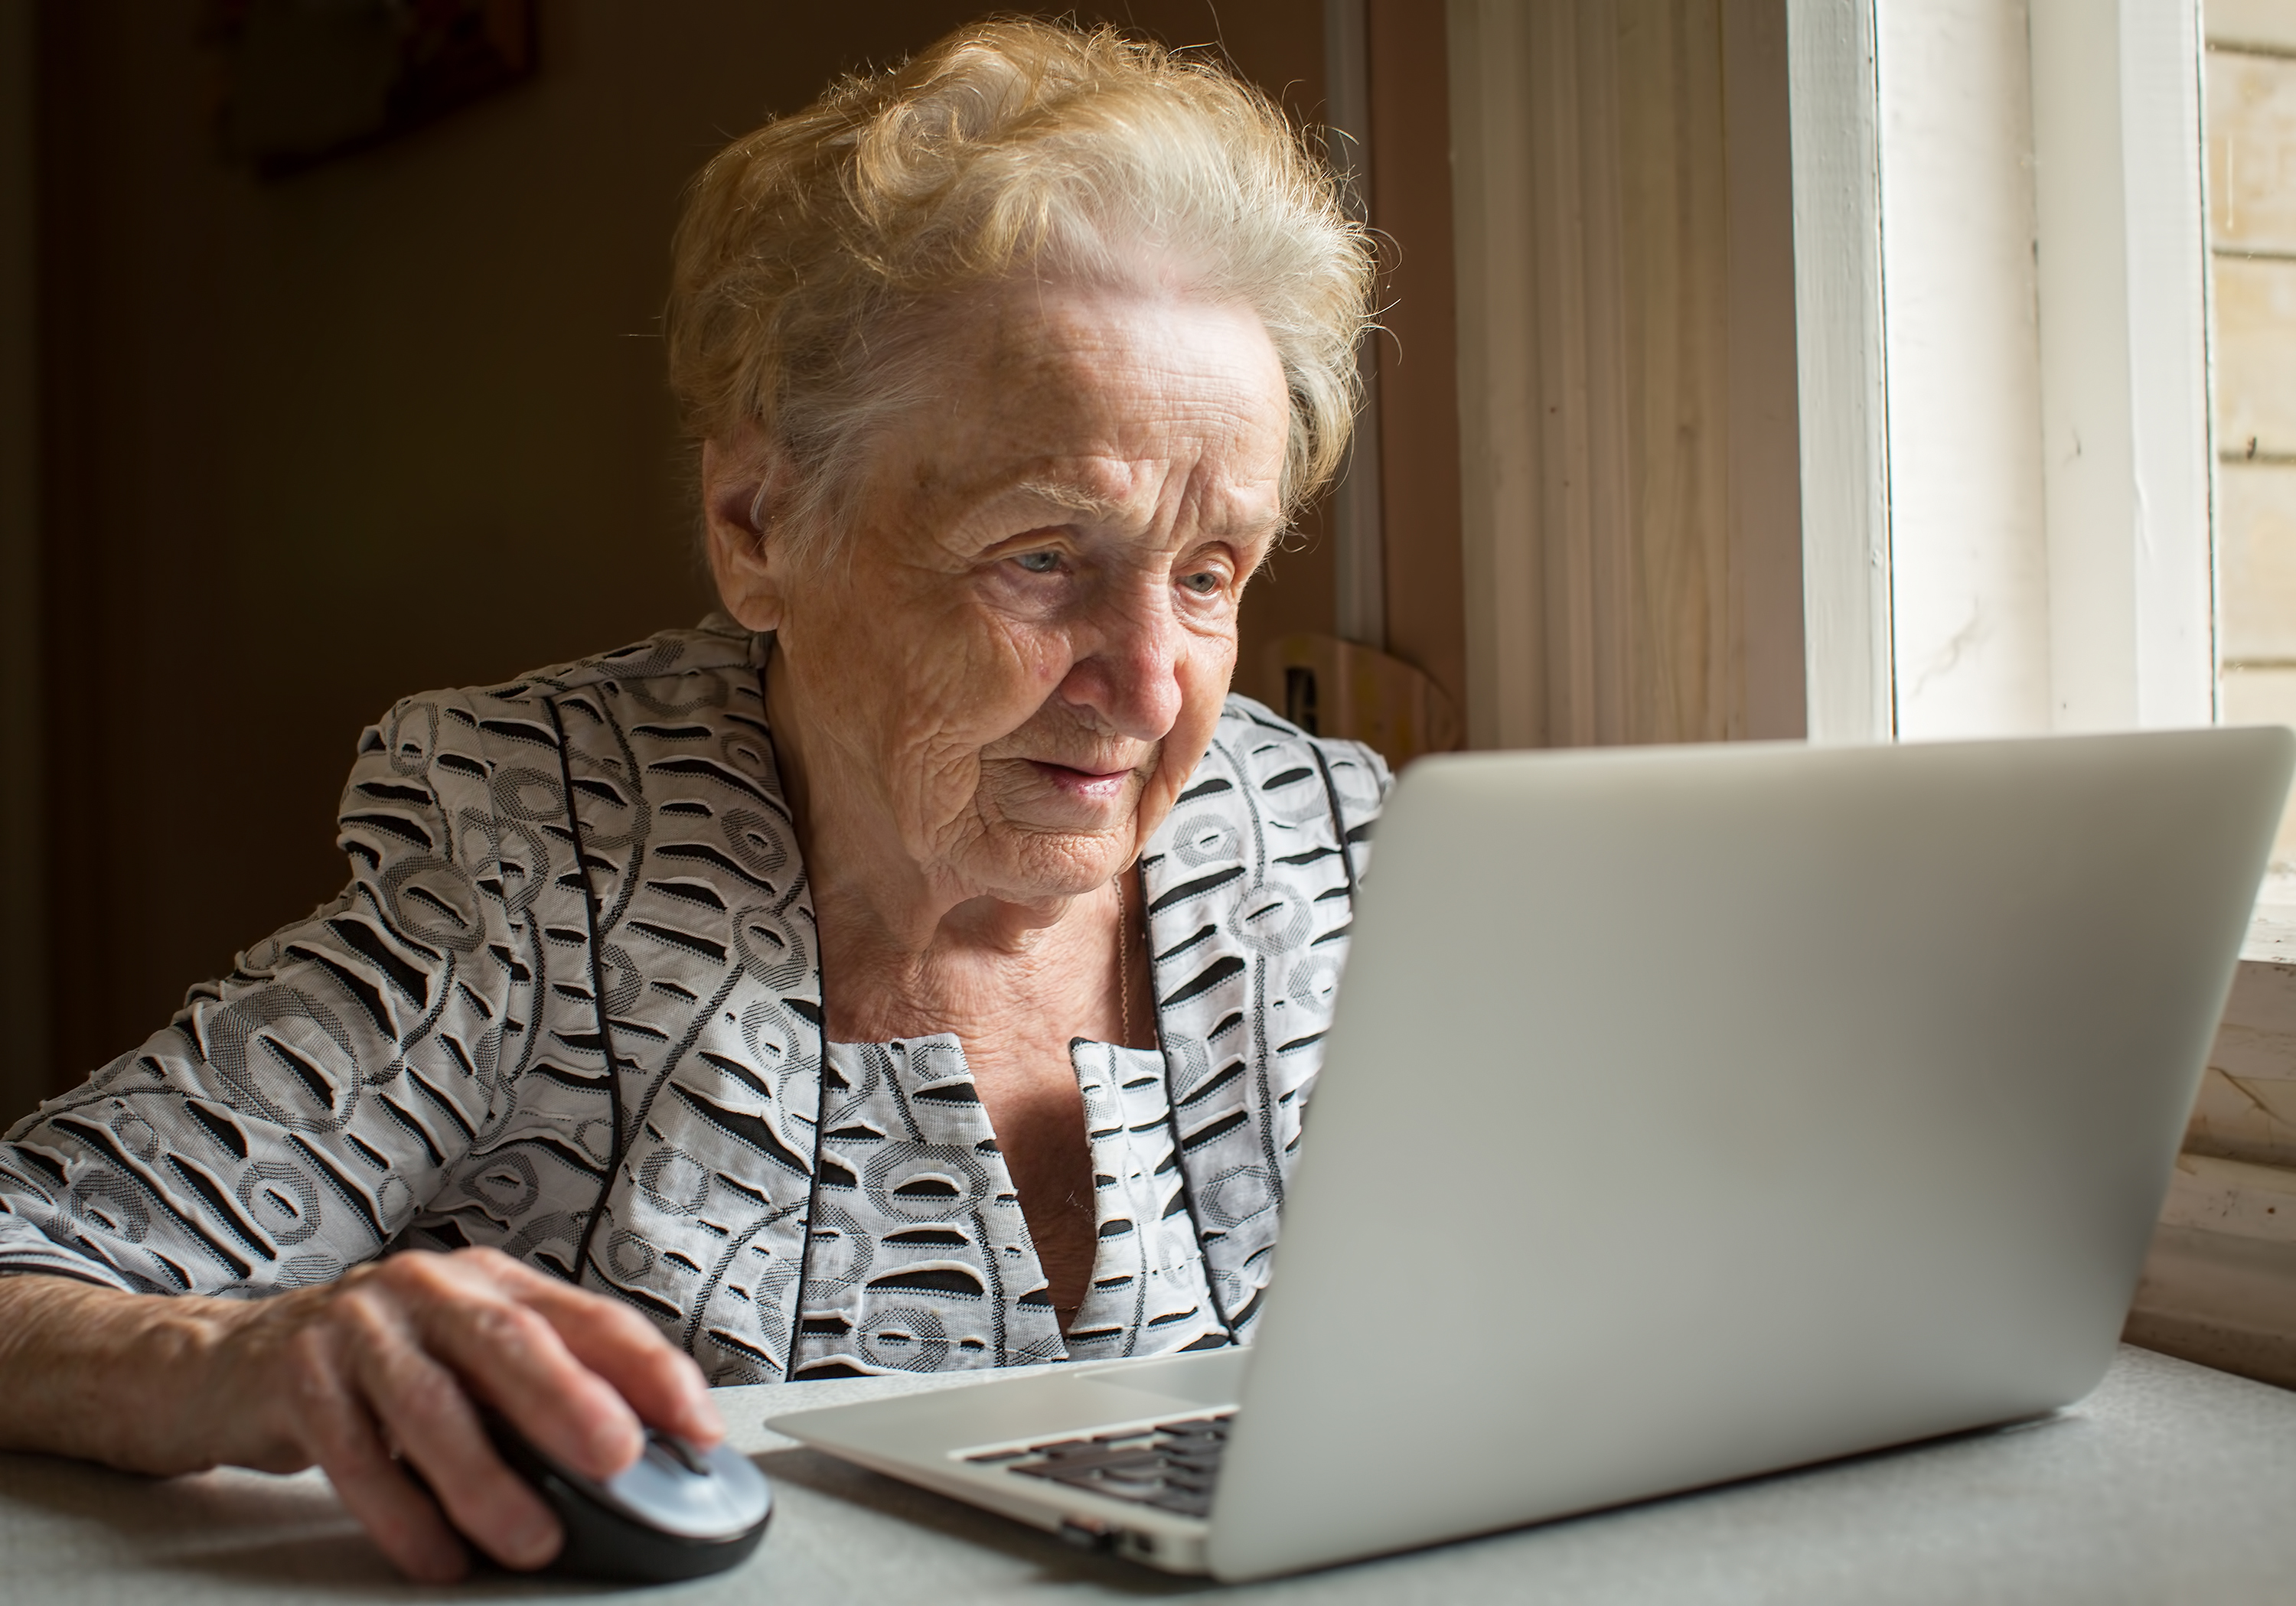 Elderly woman sitting at the table and types on laptop.